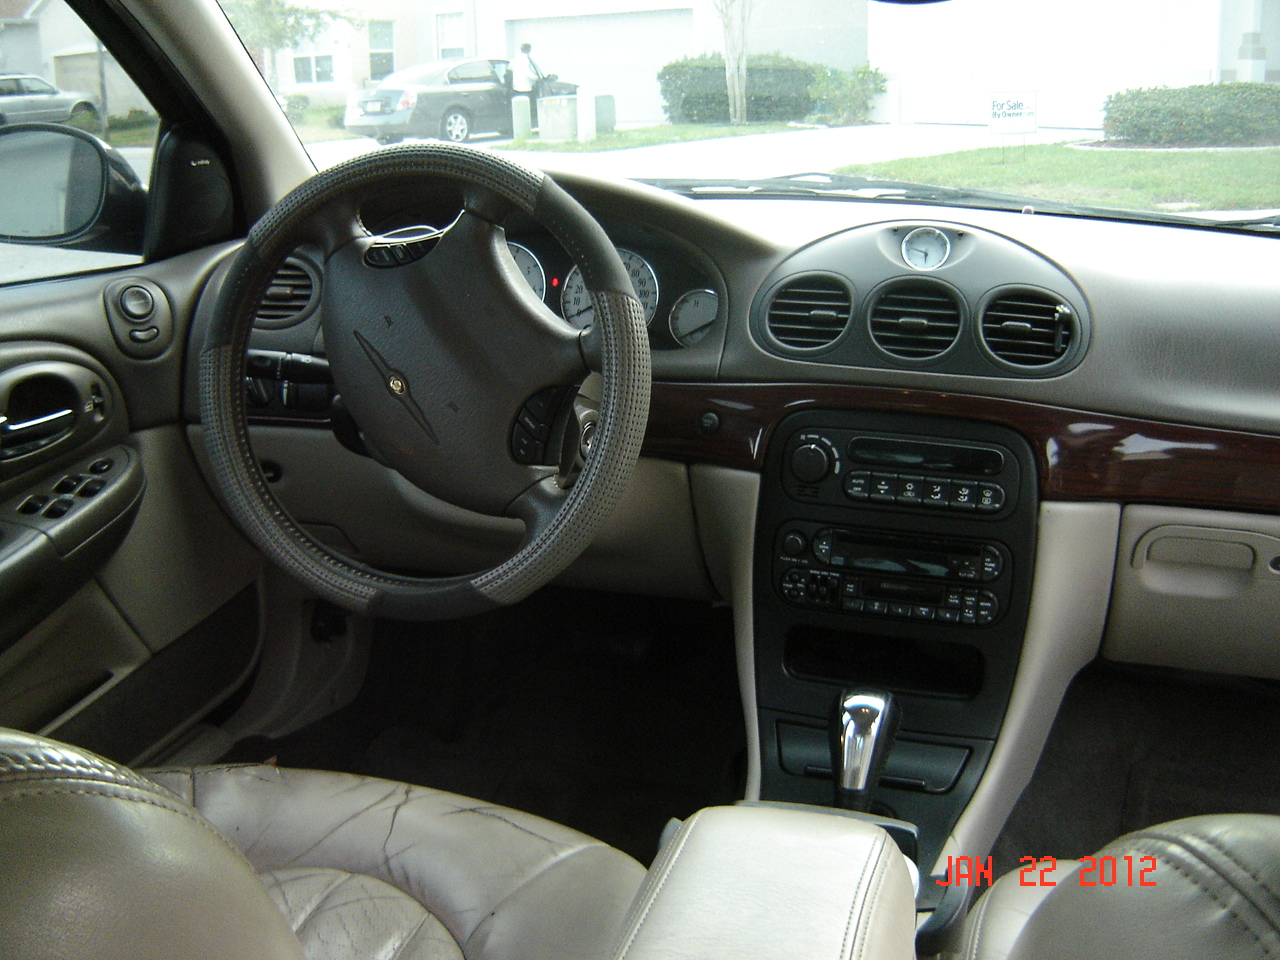 1999 Chrysler 300m Interior Images - Reverse Search